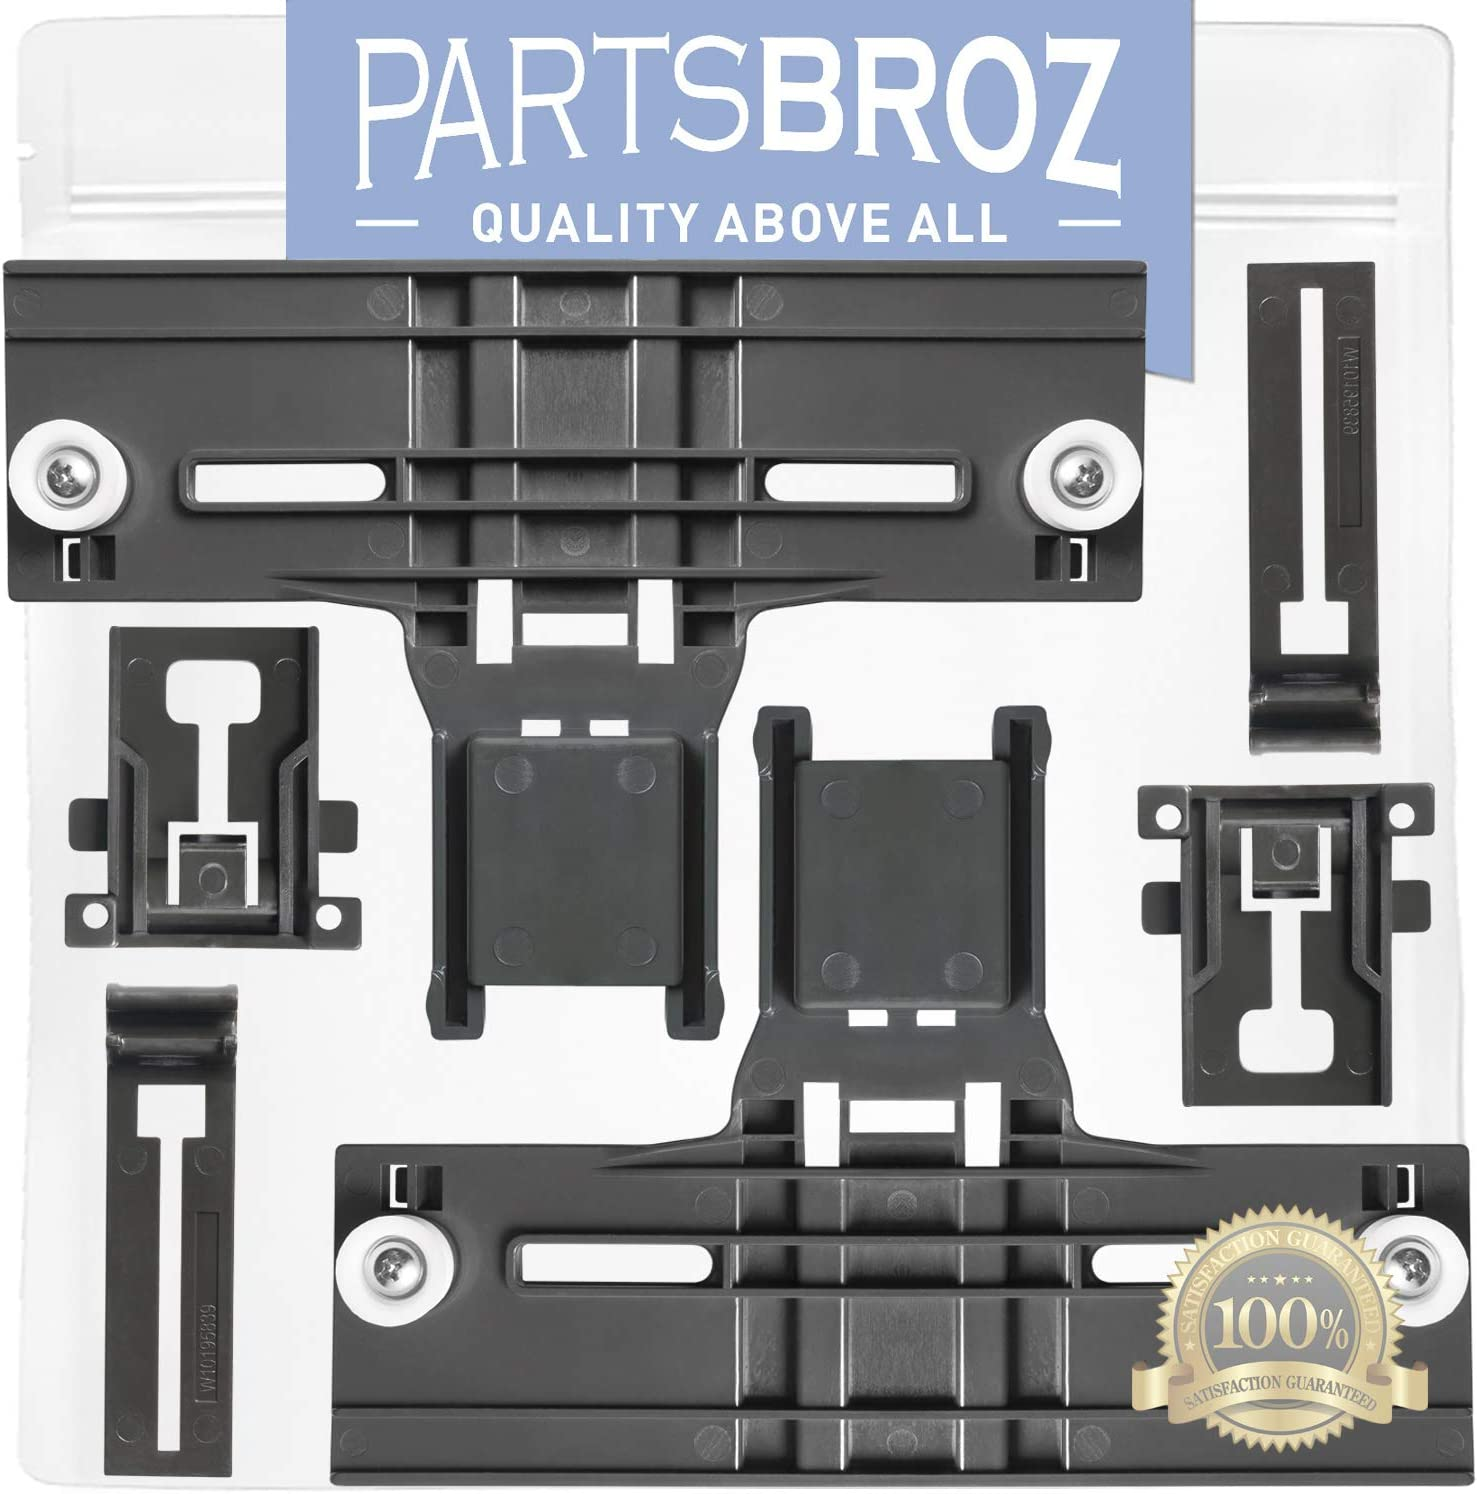 W10350376 & W10195840 & W10195839 (Pack of 2) Dishwasher Rack Adjuster Kit Replacement for Kenmore Dishwashers by PartsBroz Replaces W10712394, AP5956100, PS10064063, W10253546, AP6016800, AP6016799